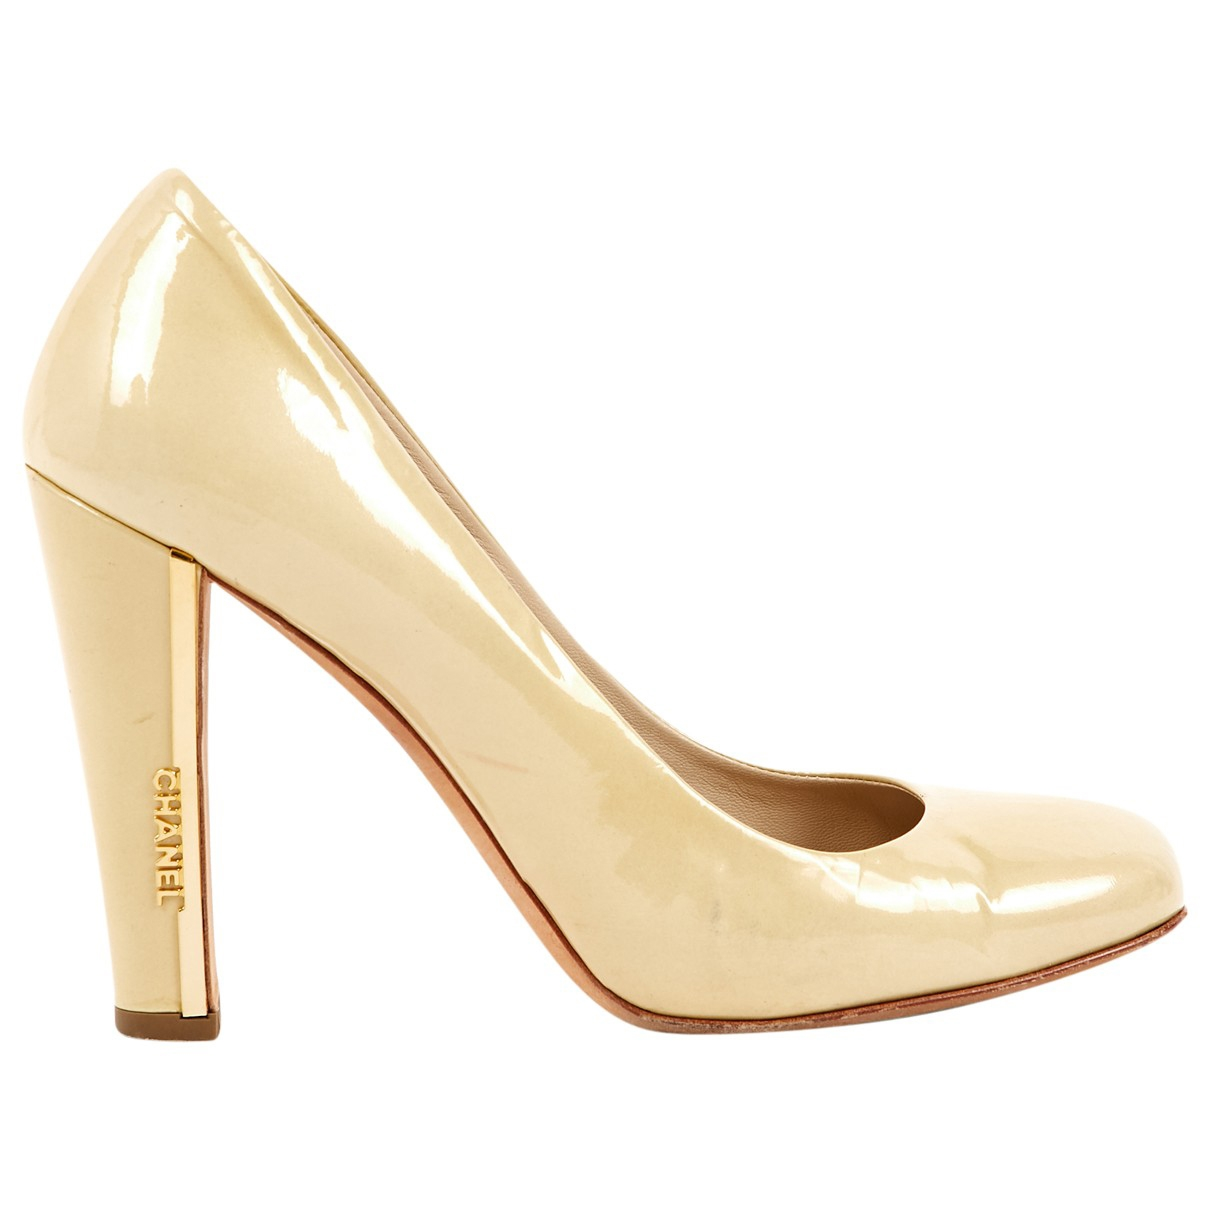 Chanel \N Yellow Patent leather Heels for Women 38 EU